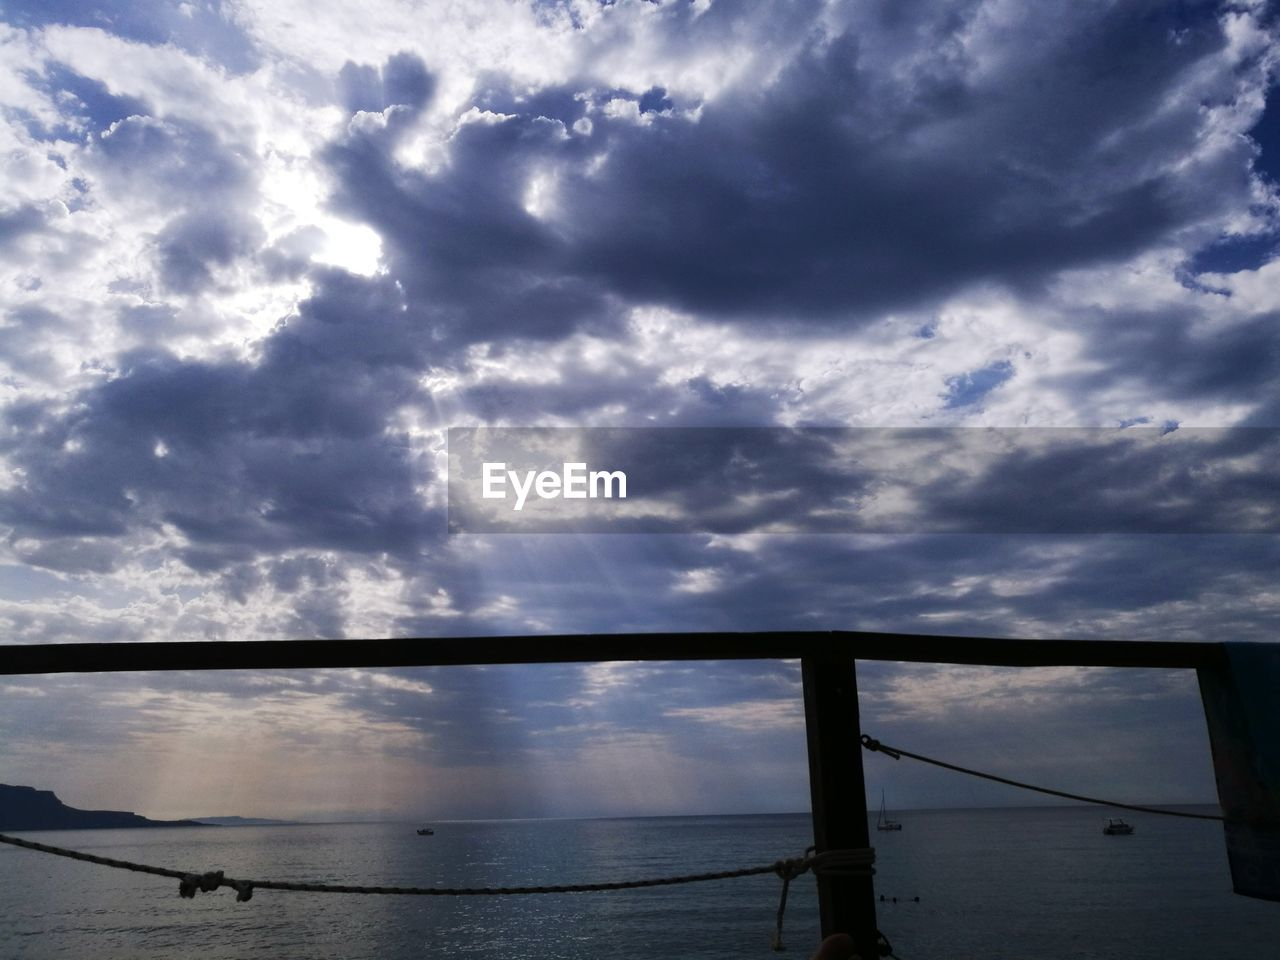 water, cloud - sky, sky, day, nature, no people, outdoors, beauty in nature, scenics, silhouette, sea, animal themes